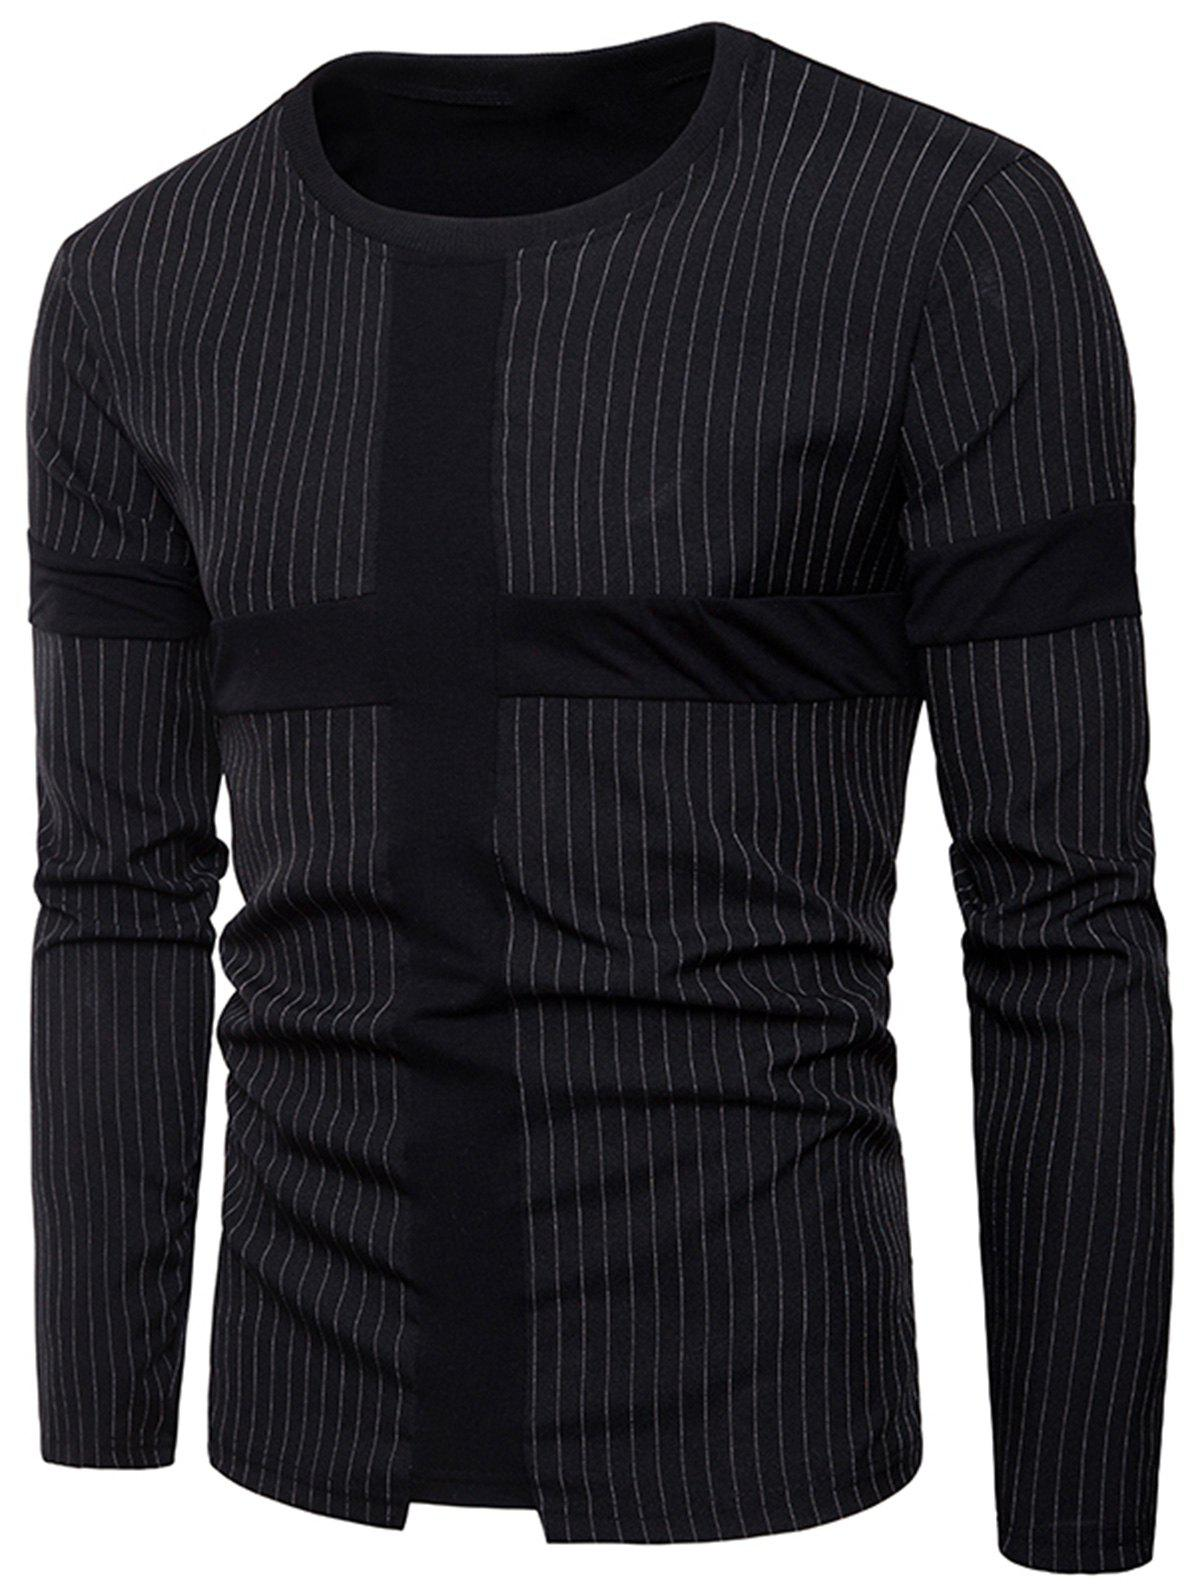 Panel Design Vertical Stripe T-shirt - BLACK L